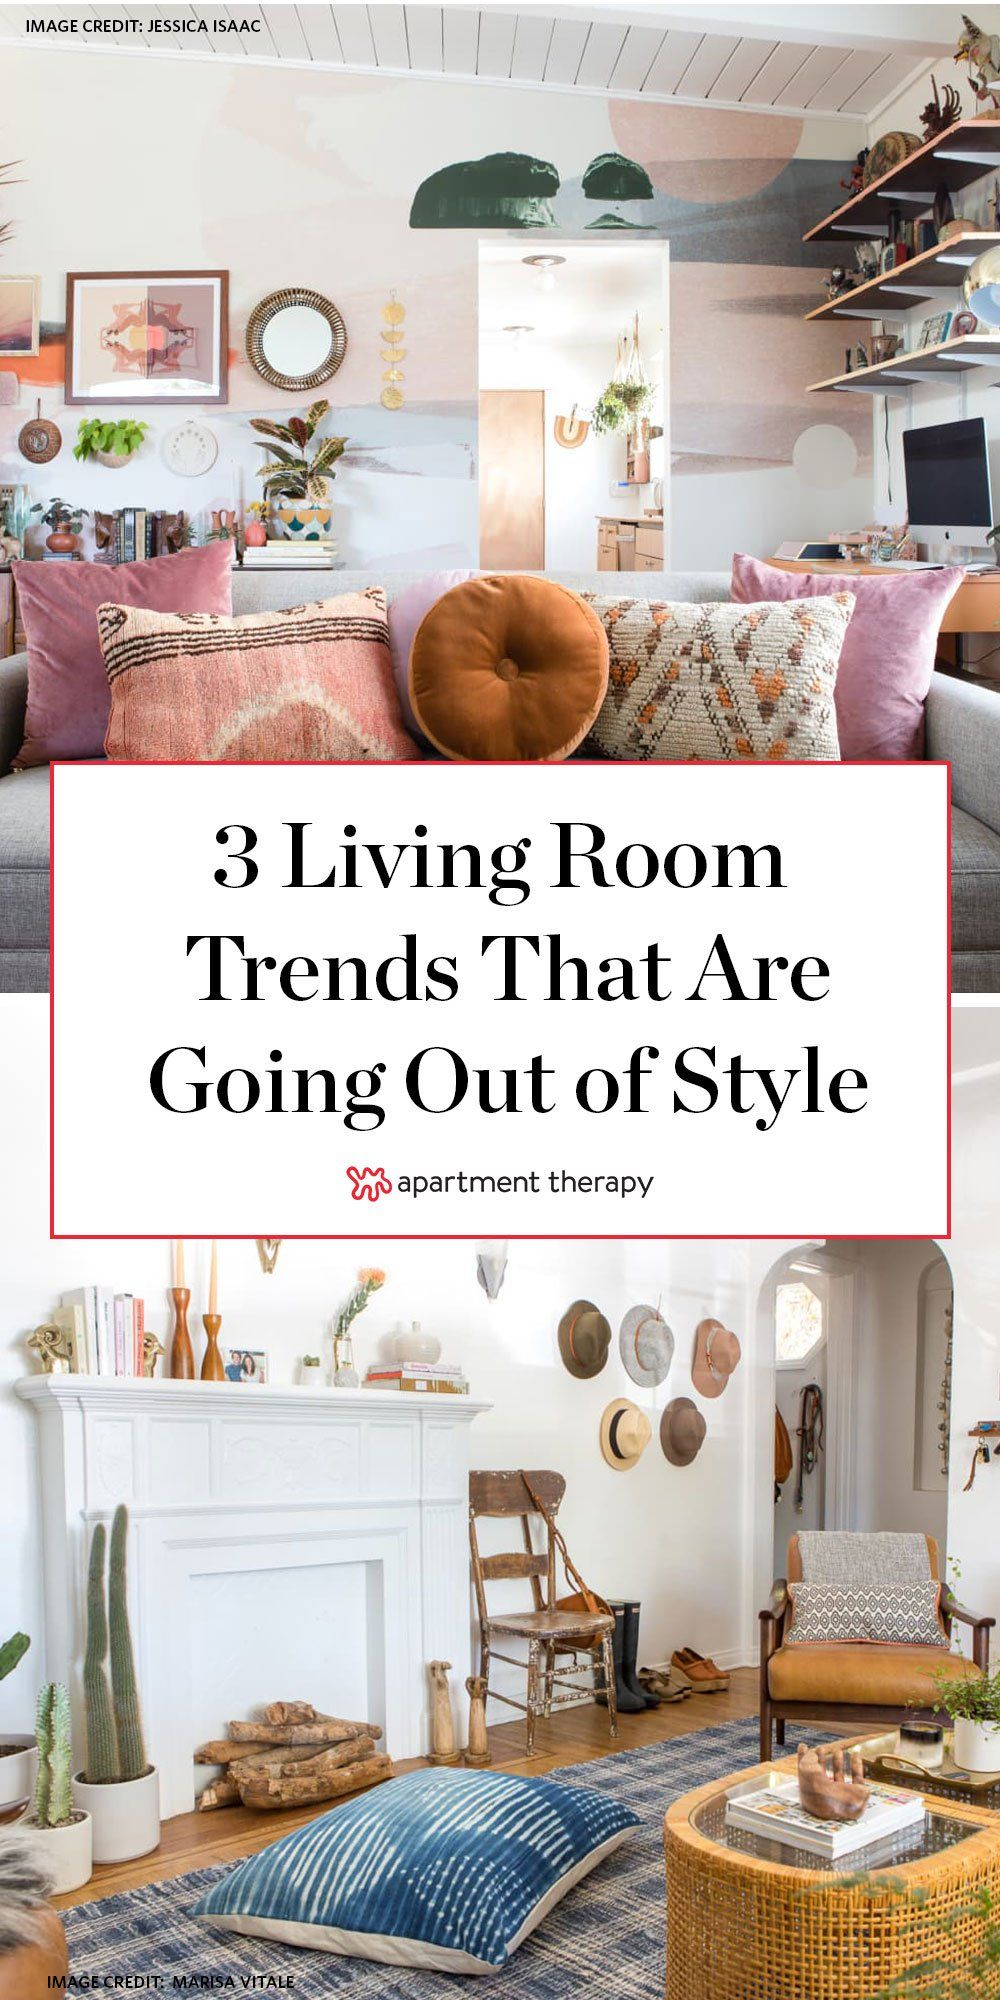 The 3 Living Room Trends That Are Slowly Disappearing From Our Homes 2020 Home Trends Living Room Trends Popular Living Room